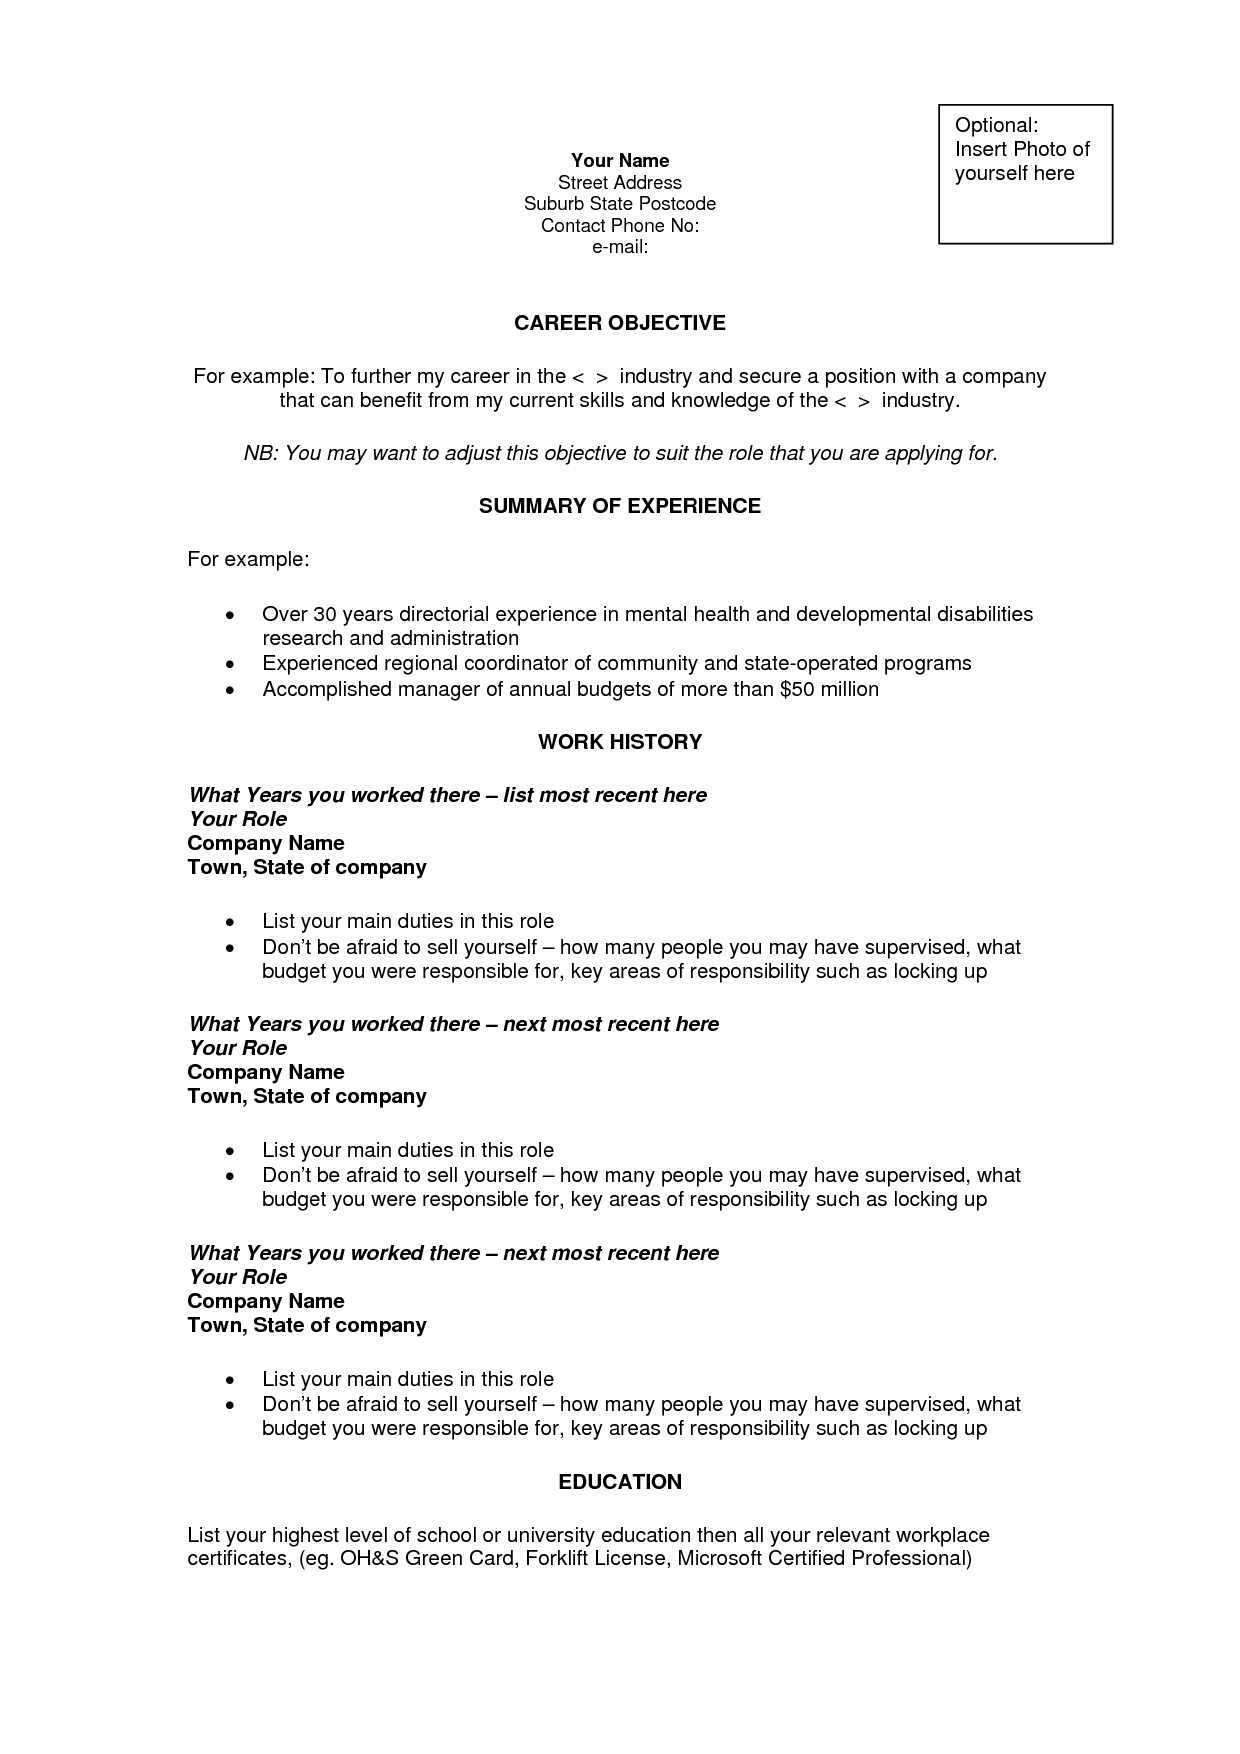 resume personal introduction online resume builder resume personal introduction how to write a self introduction letter - Personal Introduction Essay Examples